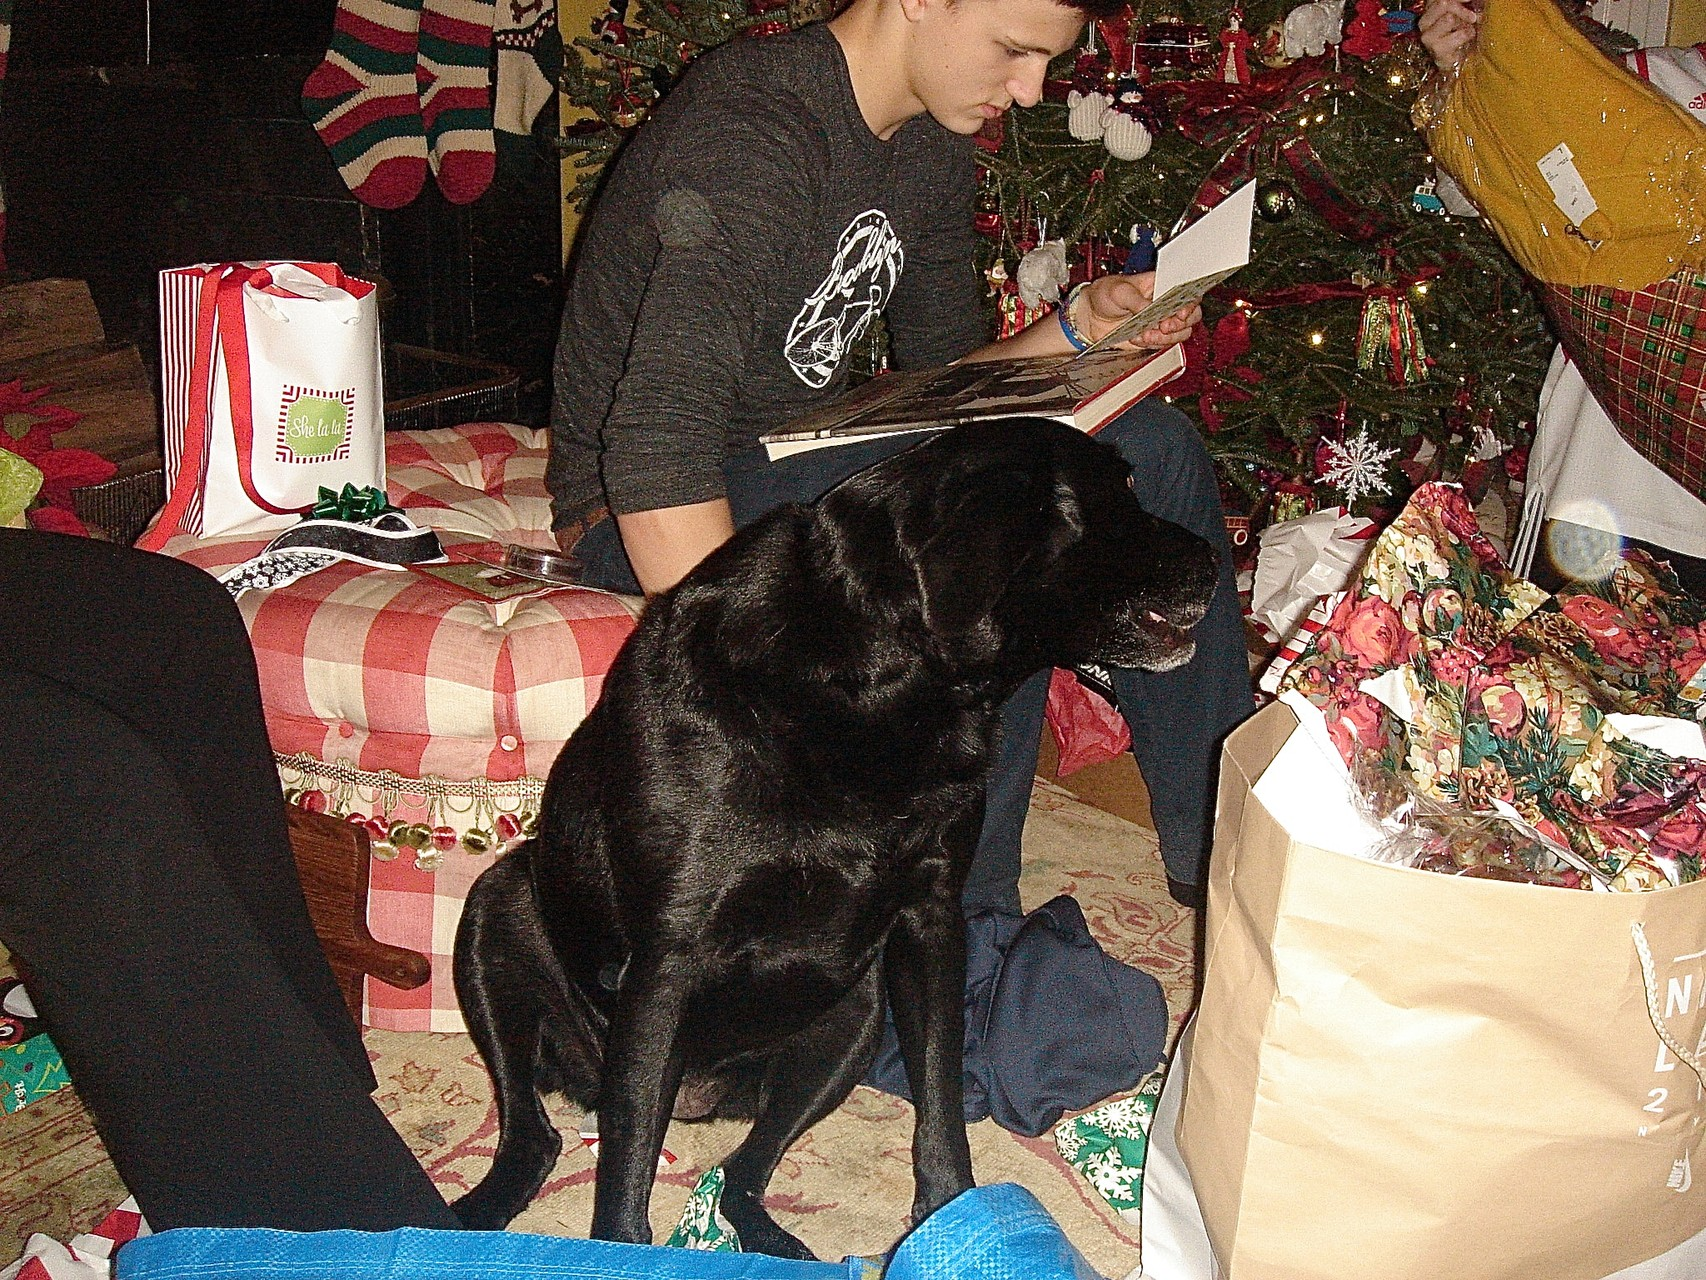 Lucy enjoys the presents.